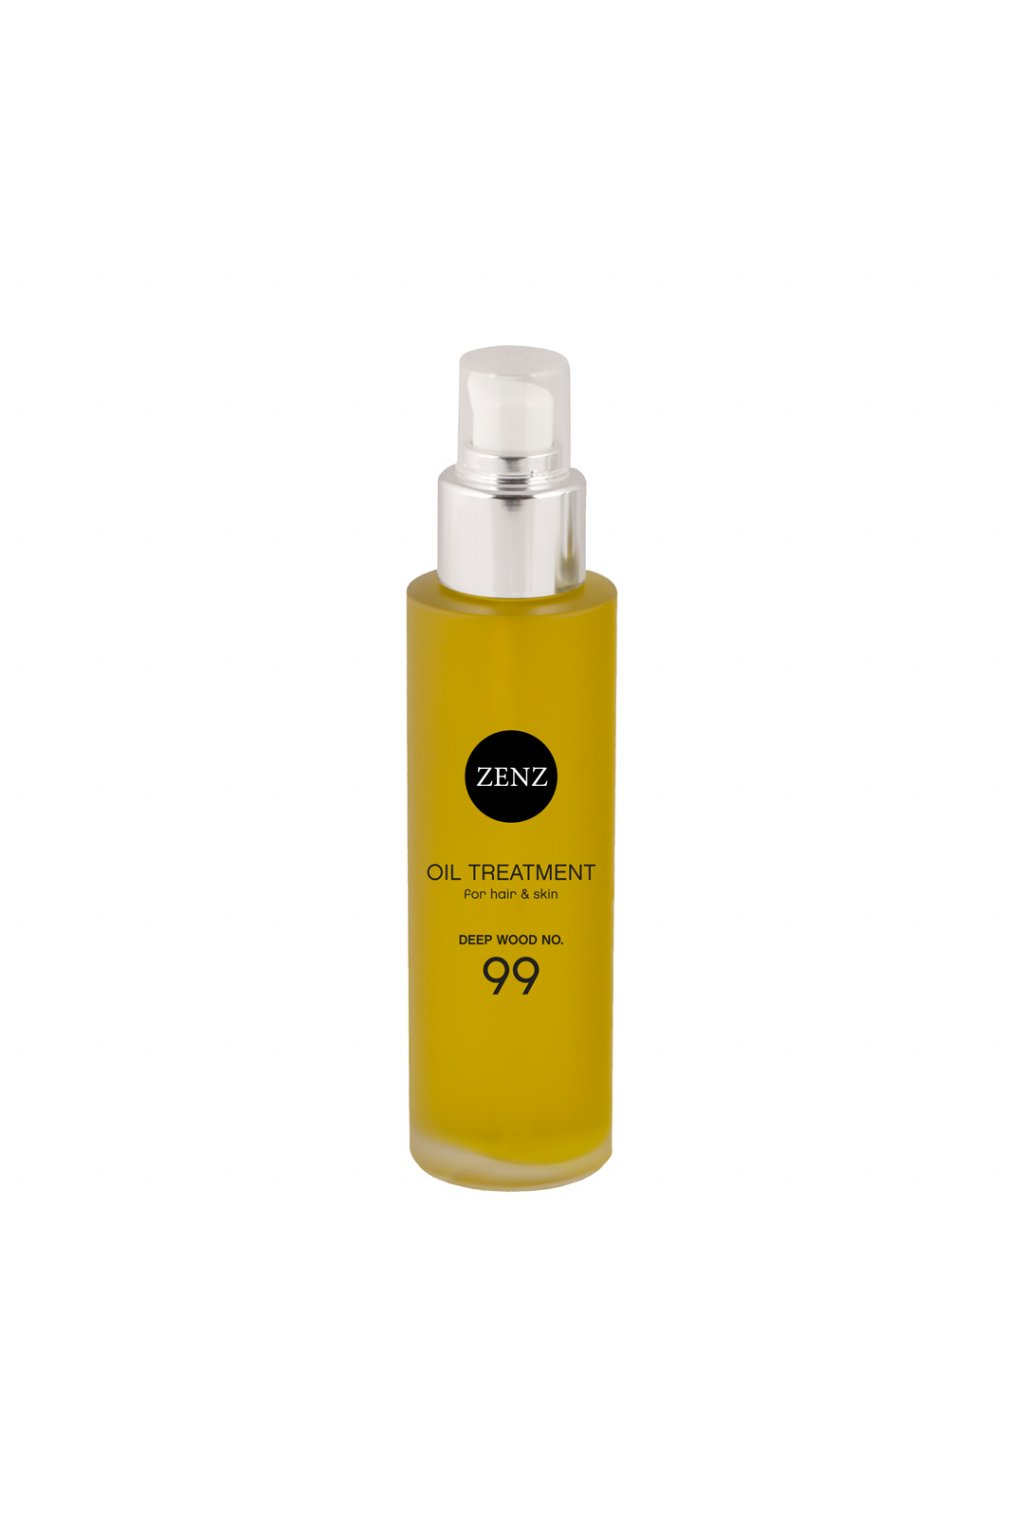 ORGANIC OIL TREATMENT ZENZ DEEP WOOD 99 100 ml PRODUCT